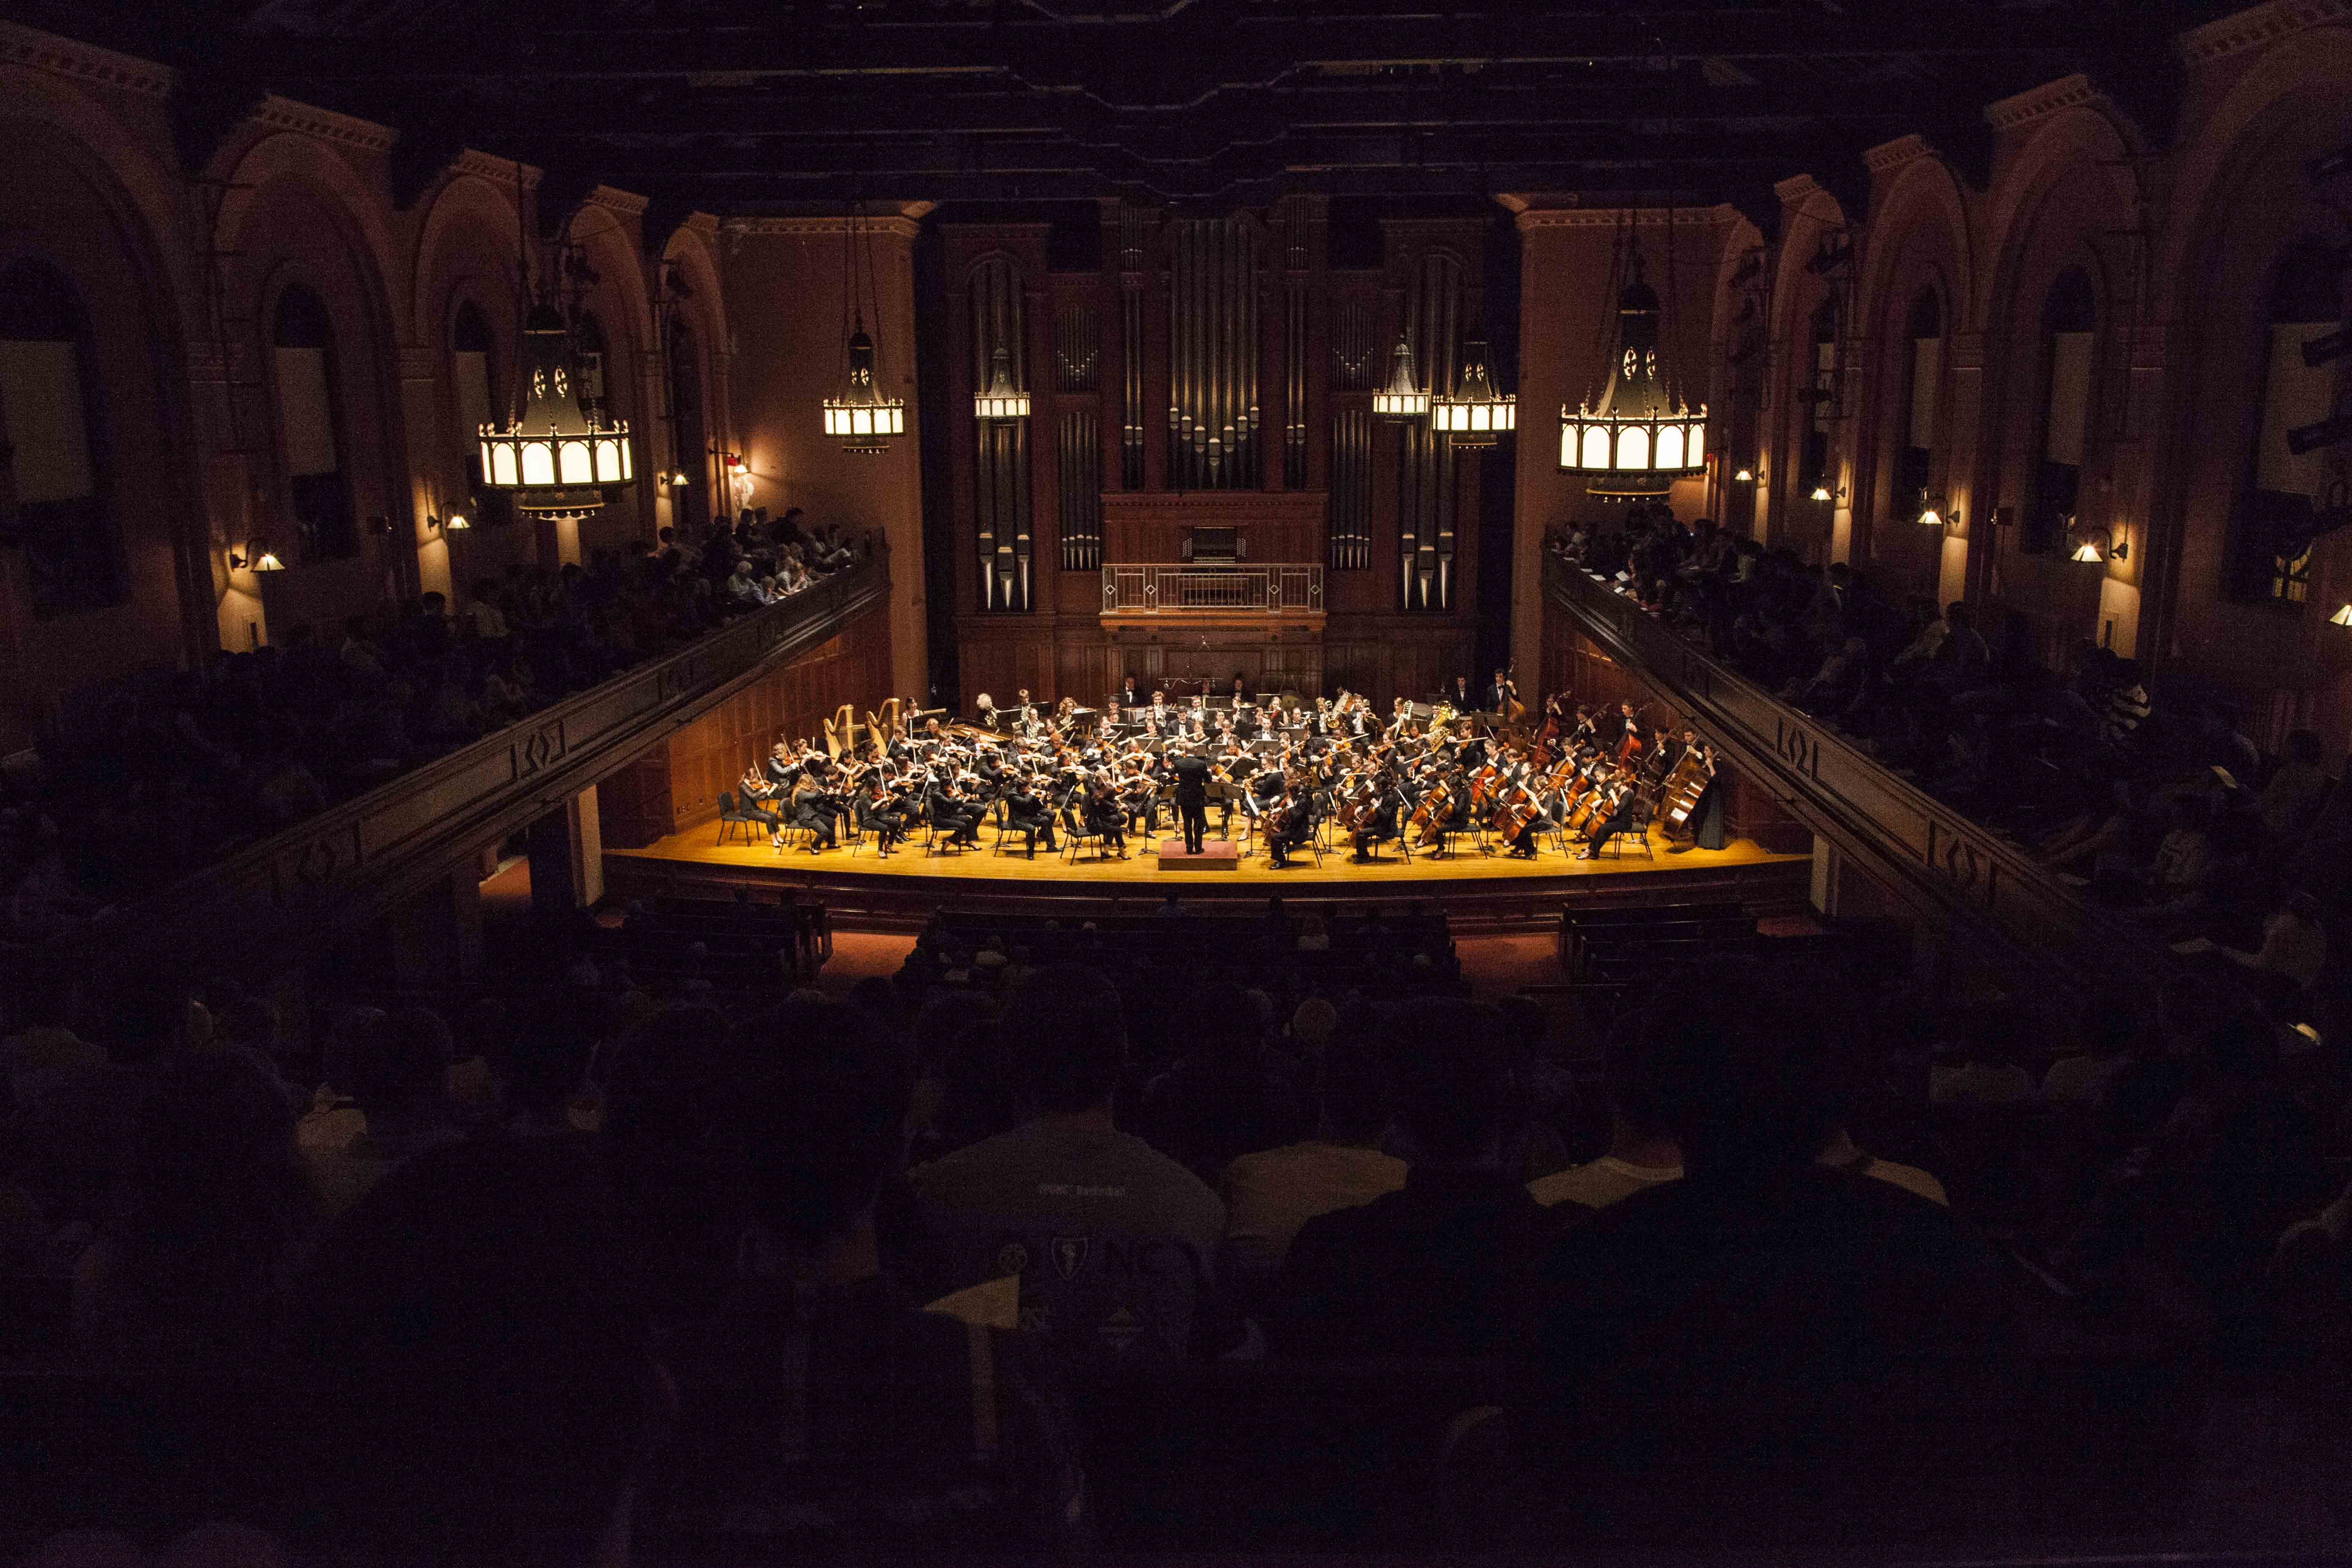 With conductor Raphael Jimenez at the helm, the Oberlin Orchestra performed the somber The Isle of the Dead, Op. 29 by Sergei Rachmaninoff and the complex Symphony No. 5 in D Minor, Op. 47 by Dmitri Shostakovich, bookending a tumultuous stretch of Russian history.